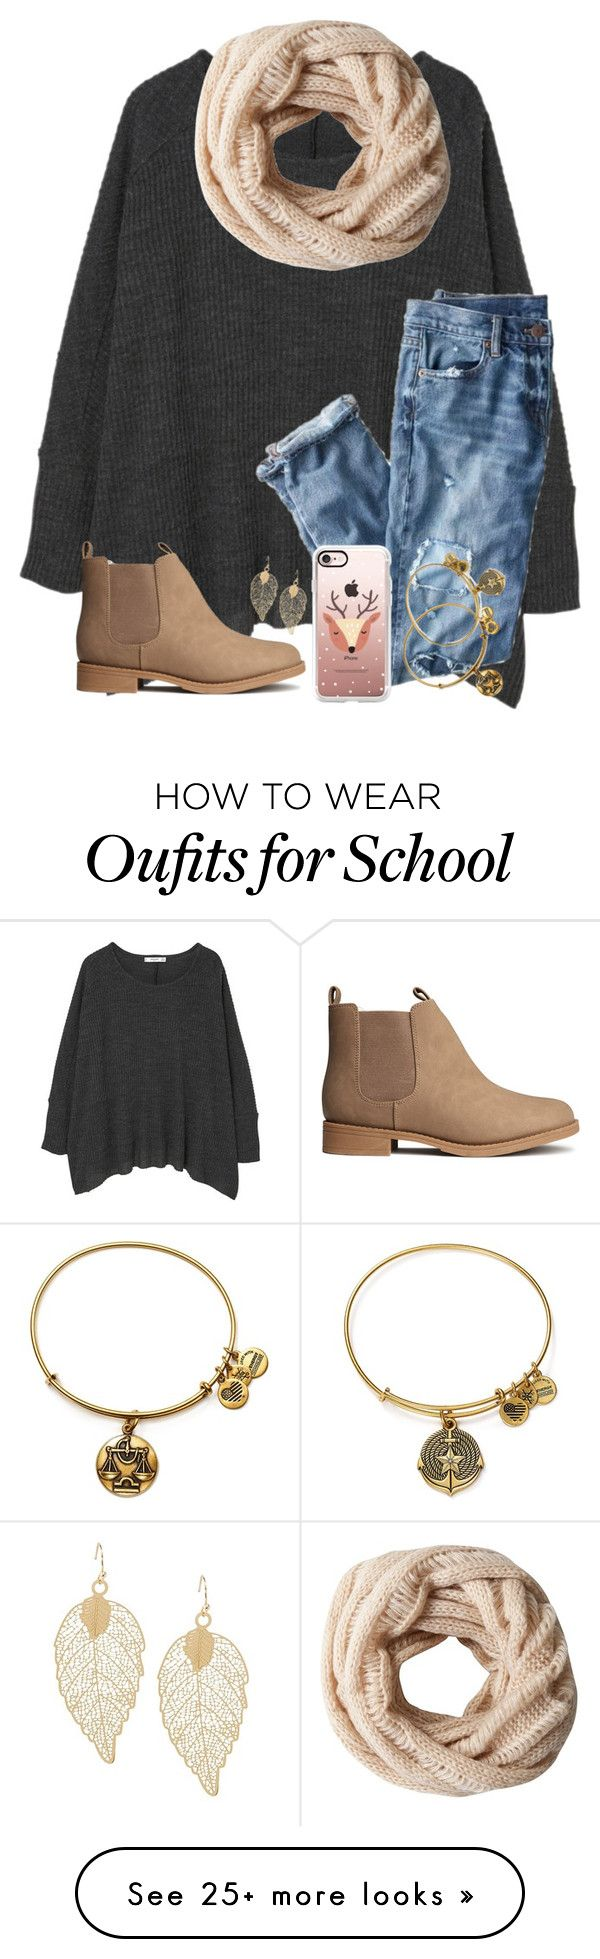 """""""LAST DAY OF SCHOOL BEFORE BREAK!!!"""" by twaayy on Polyvore featuring MANGO, J.Crew, A.Forty Three, H&M, Casetify and Alex and Ani"""